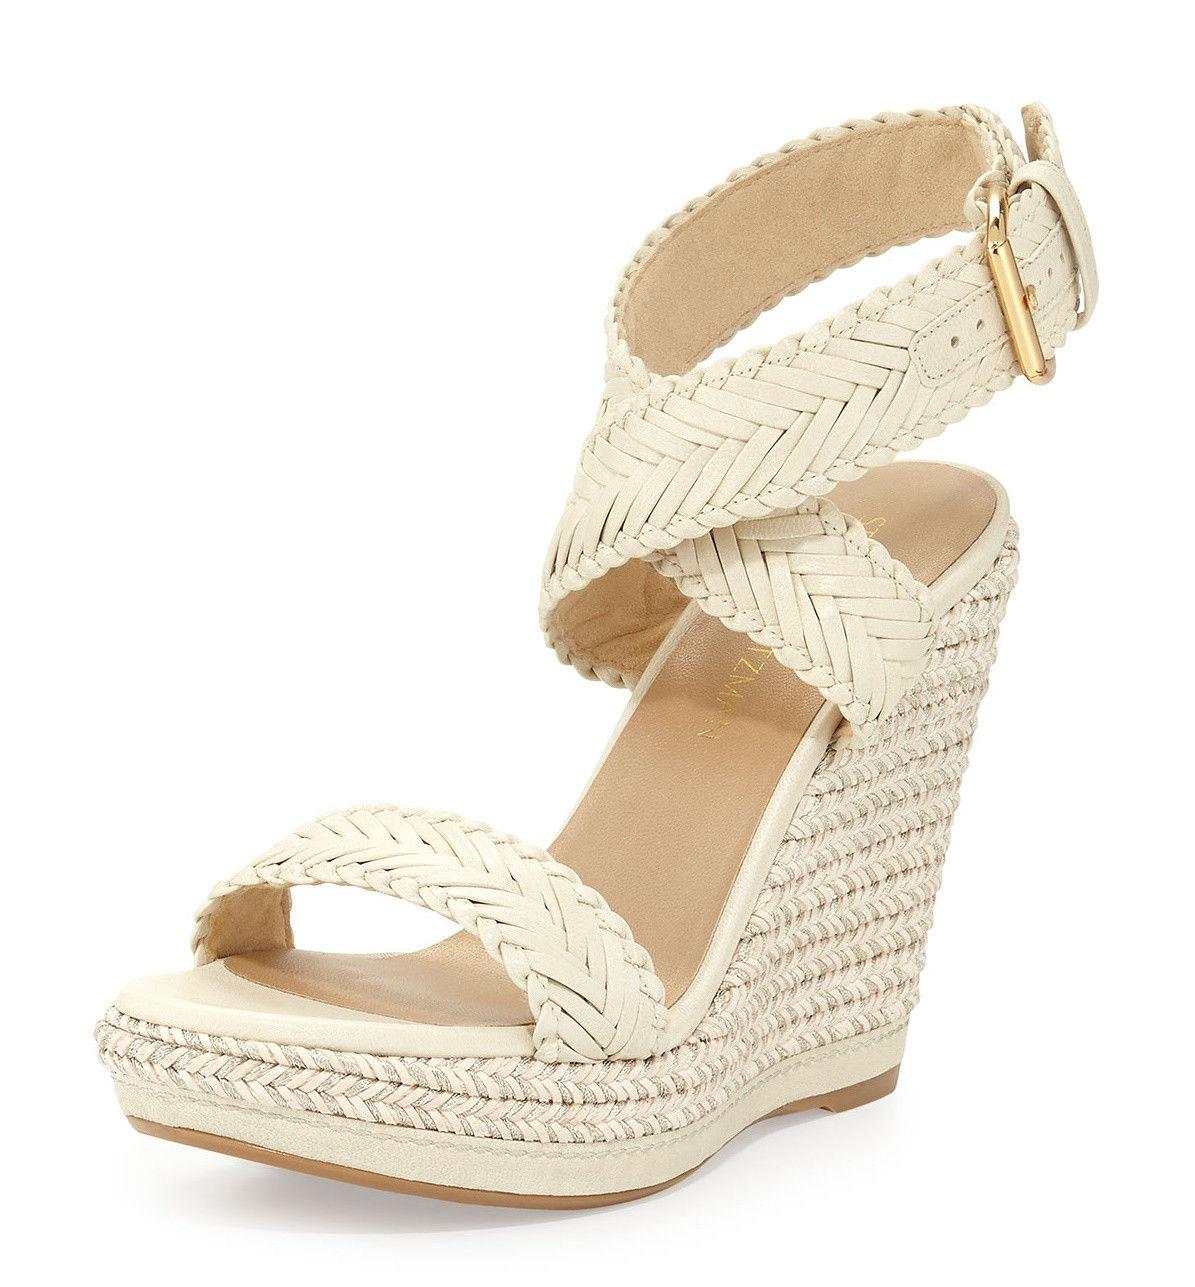 cheap online store Stuart Weitzman Leather Espadrille Sandals quality from china cheap sale clearance cheap sale shopping online ygPZwarav